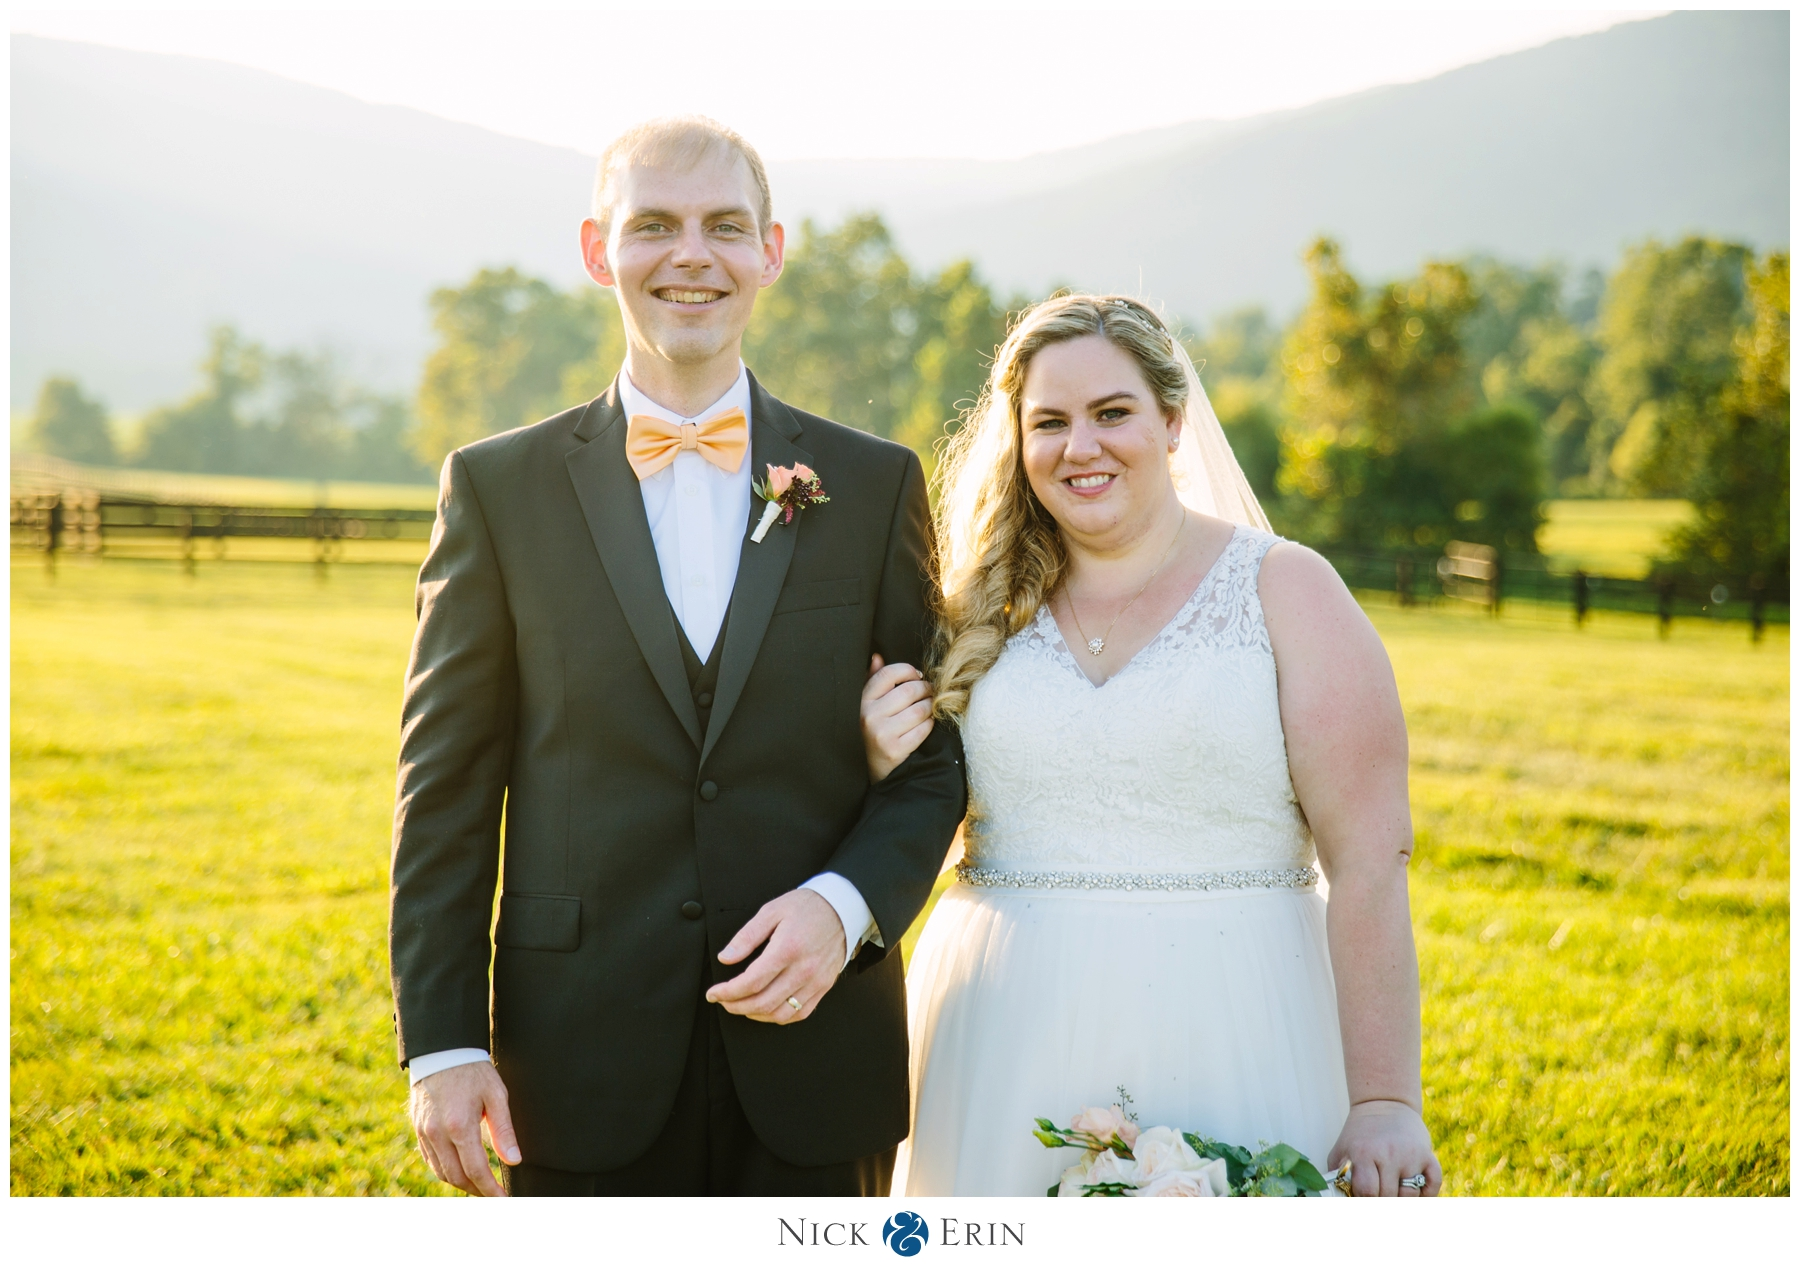 Donner_Photography_Charlottesville Virginia Wedding_Jennifer & Chris_0005a